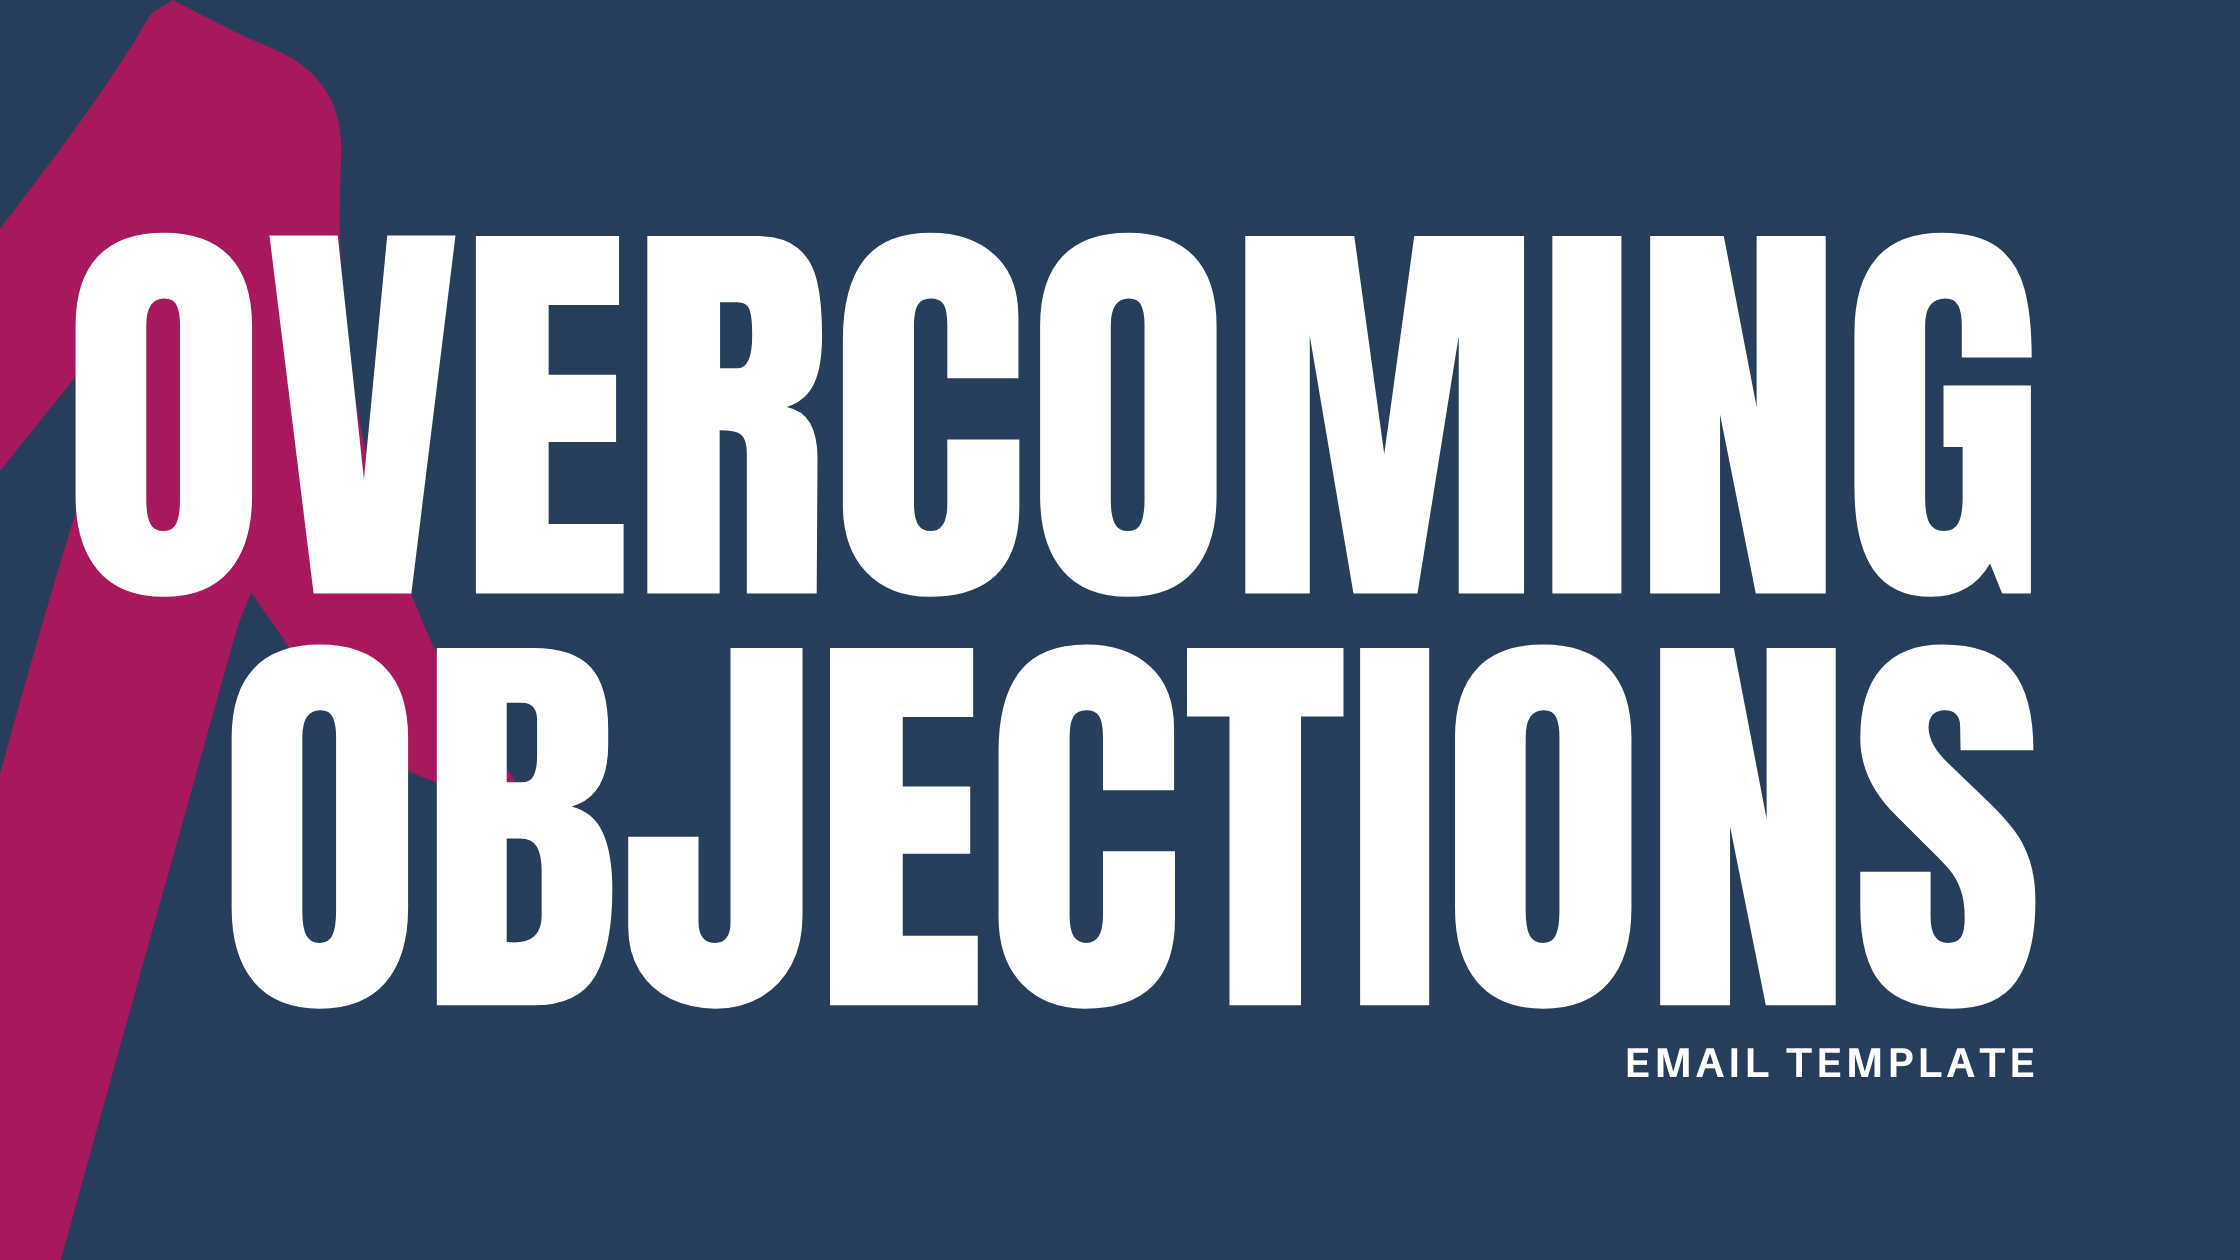 OVERCOMING OBJECTIONS EMAIL TEMPLATE